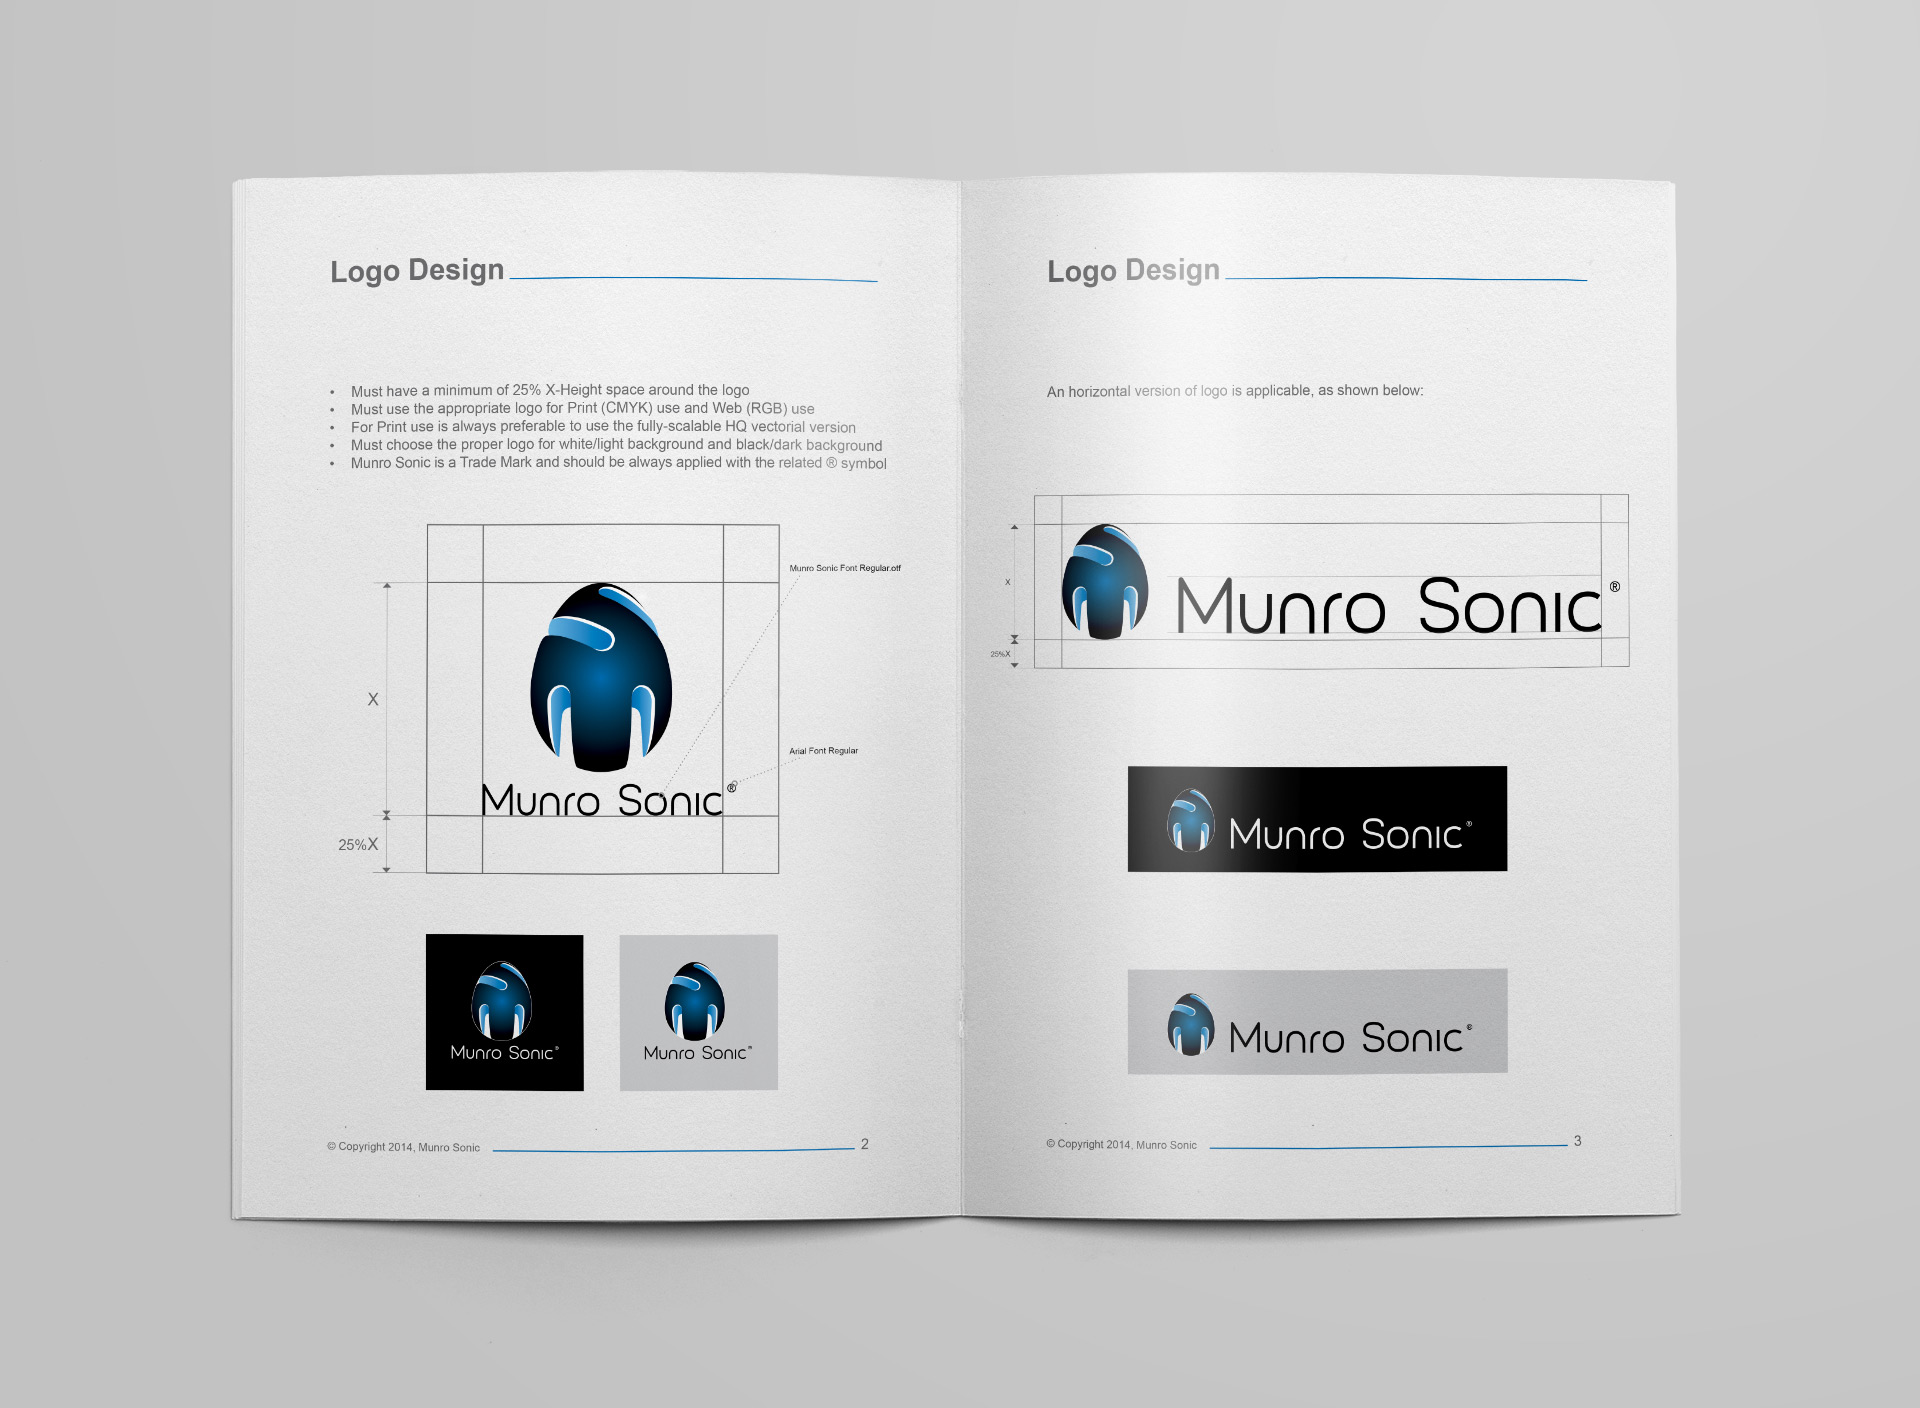 Munro-Sonic-guidelines-02-03